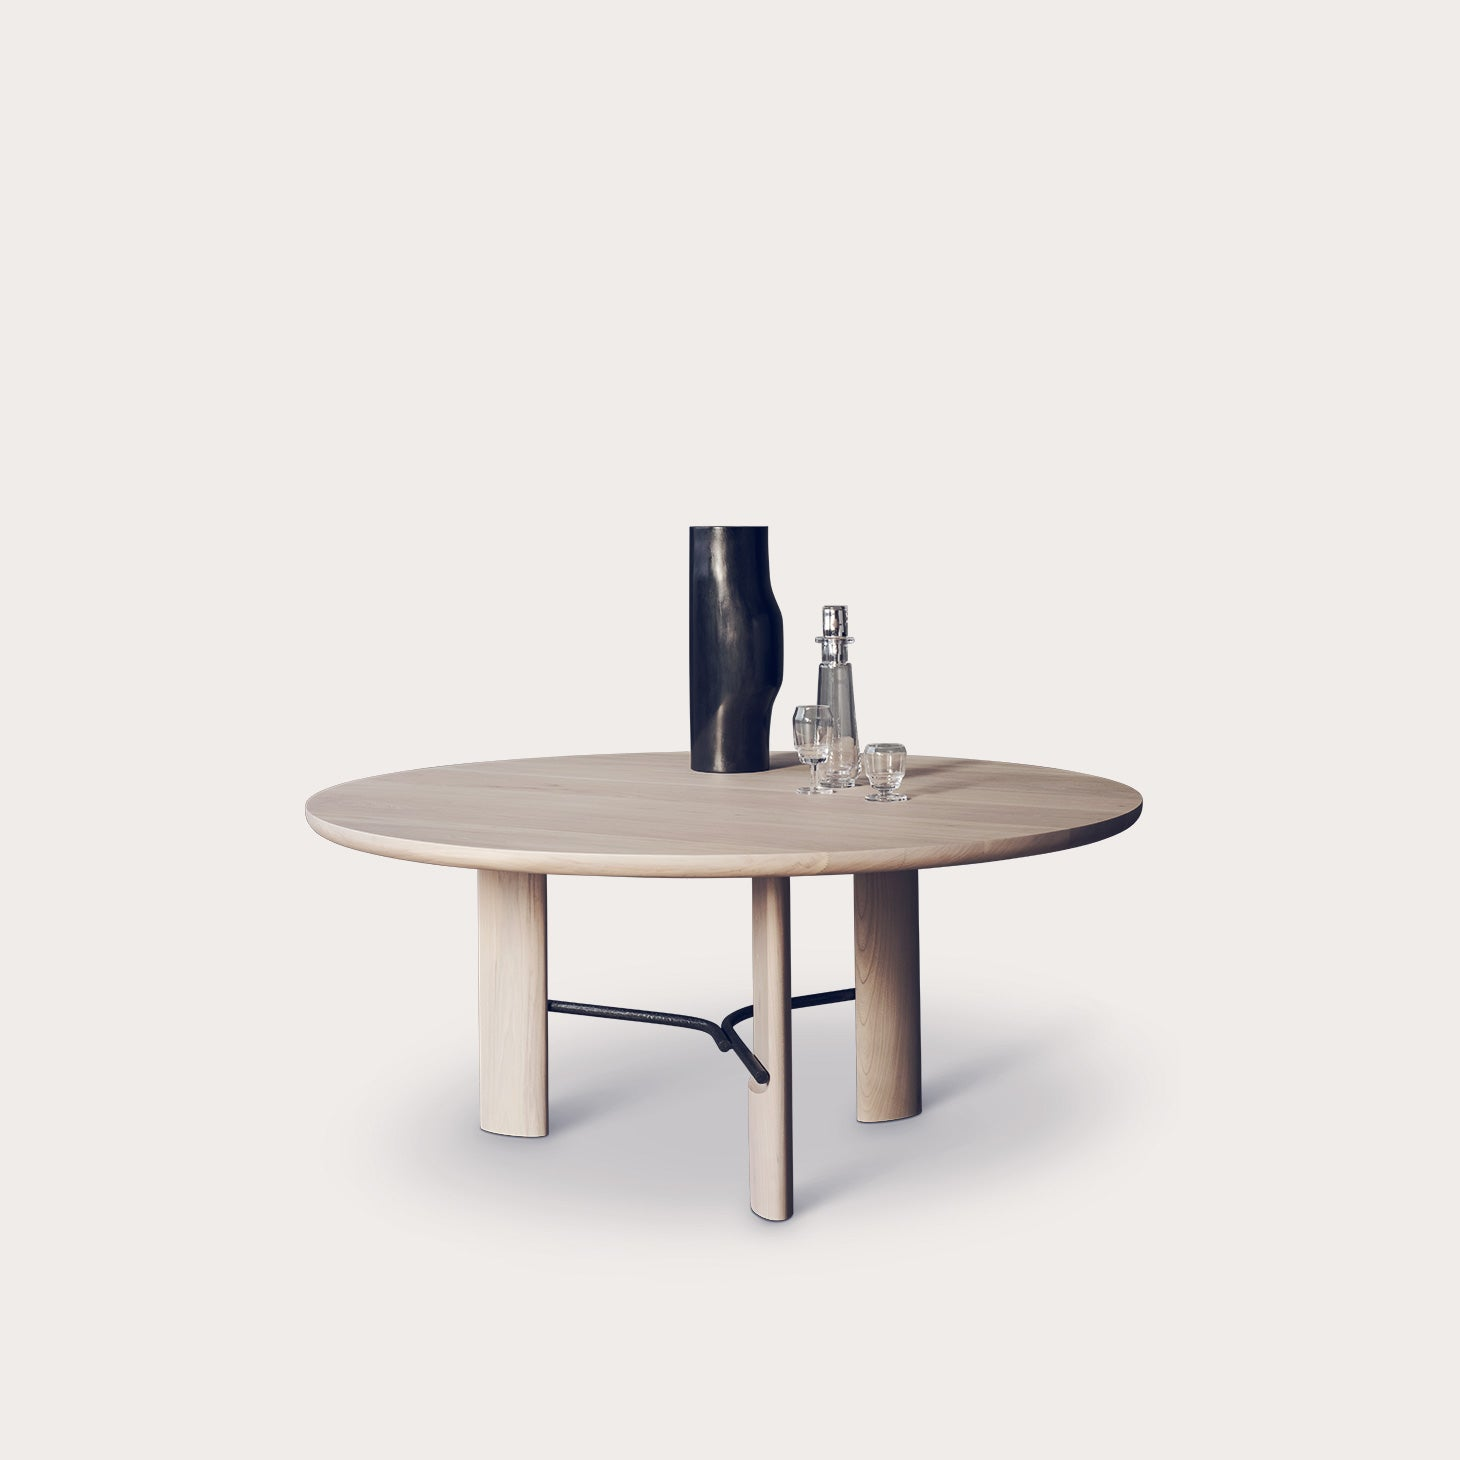 HUB Dining Table Tables Christophe Delcourt Designer Furniture Sku: 765-230-10022